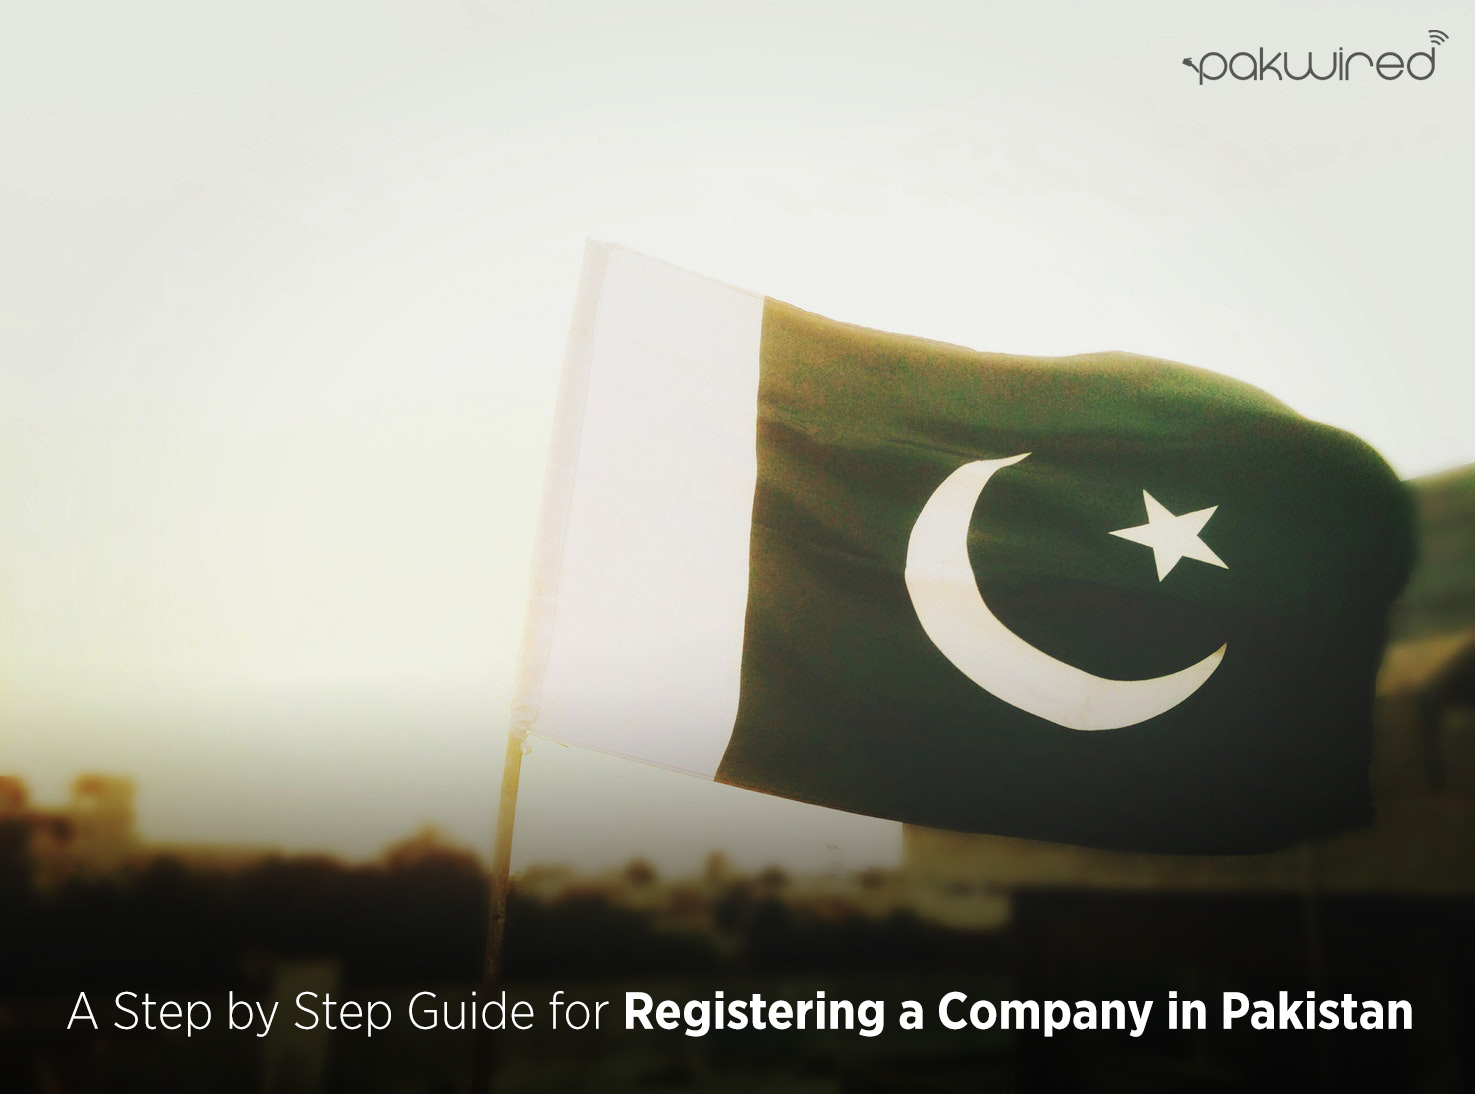 A Step by Step Guide for Registering a Company in Pakistan